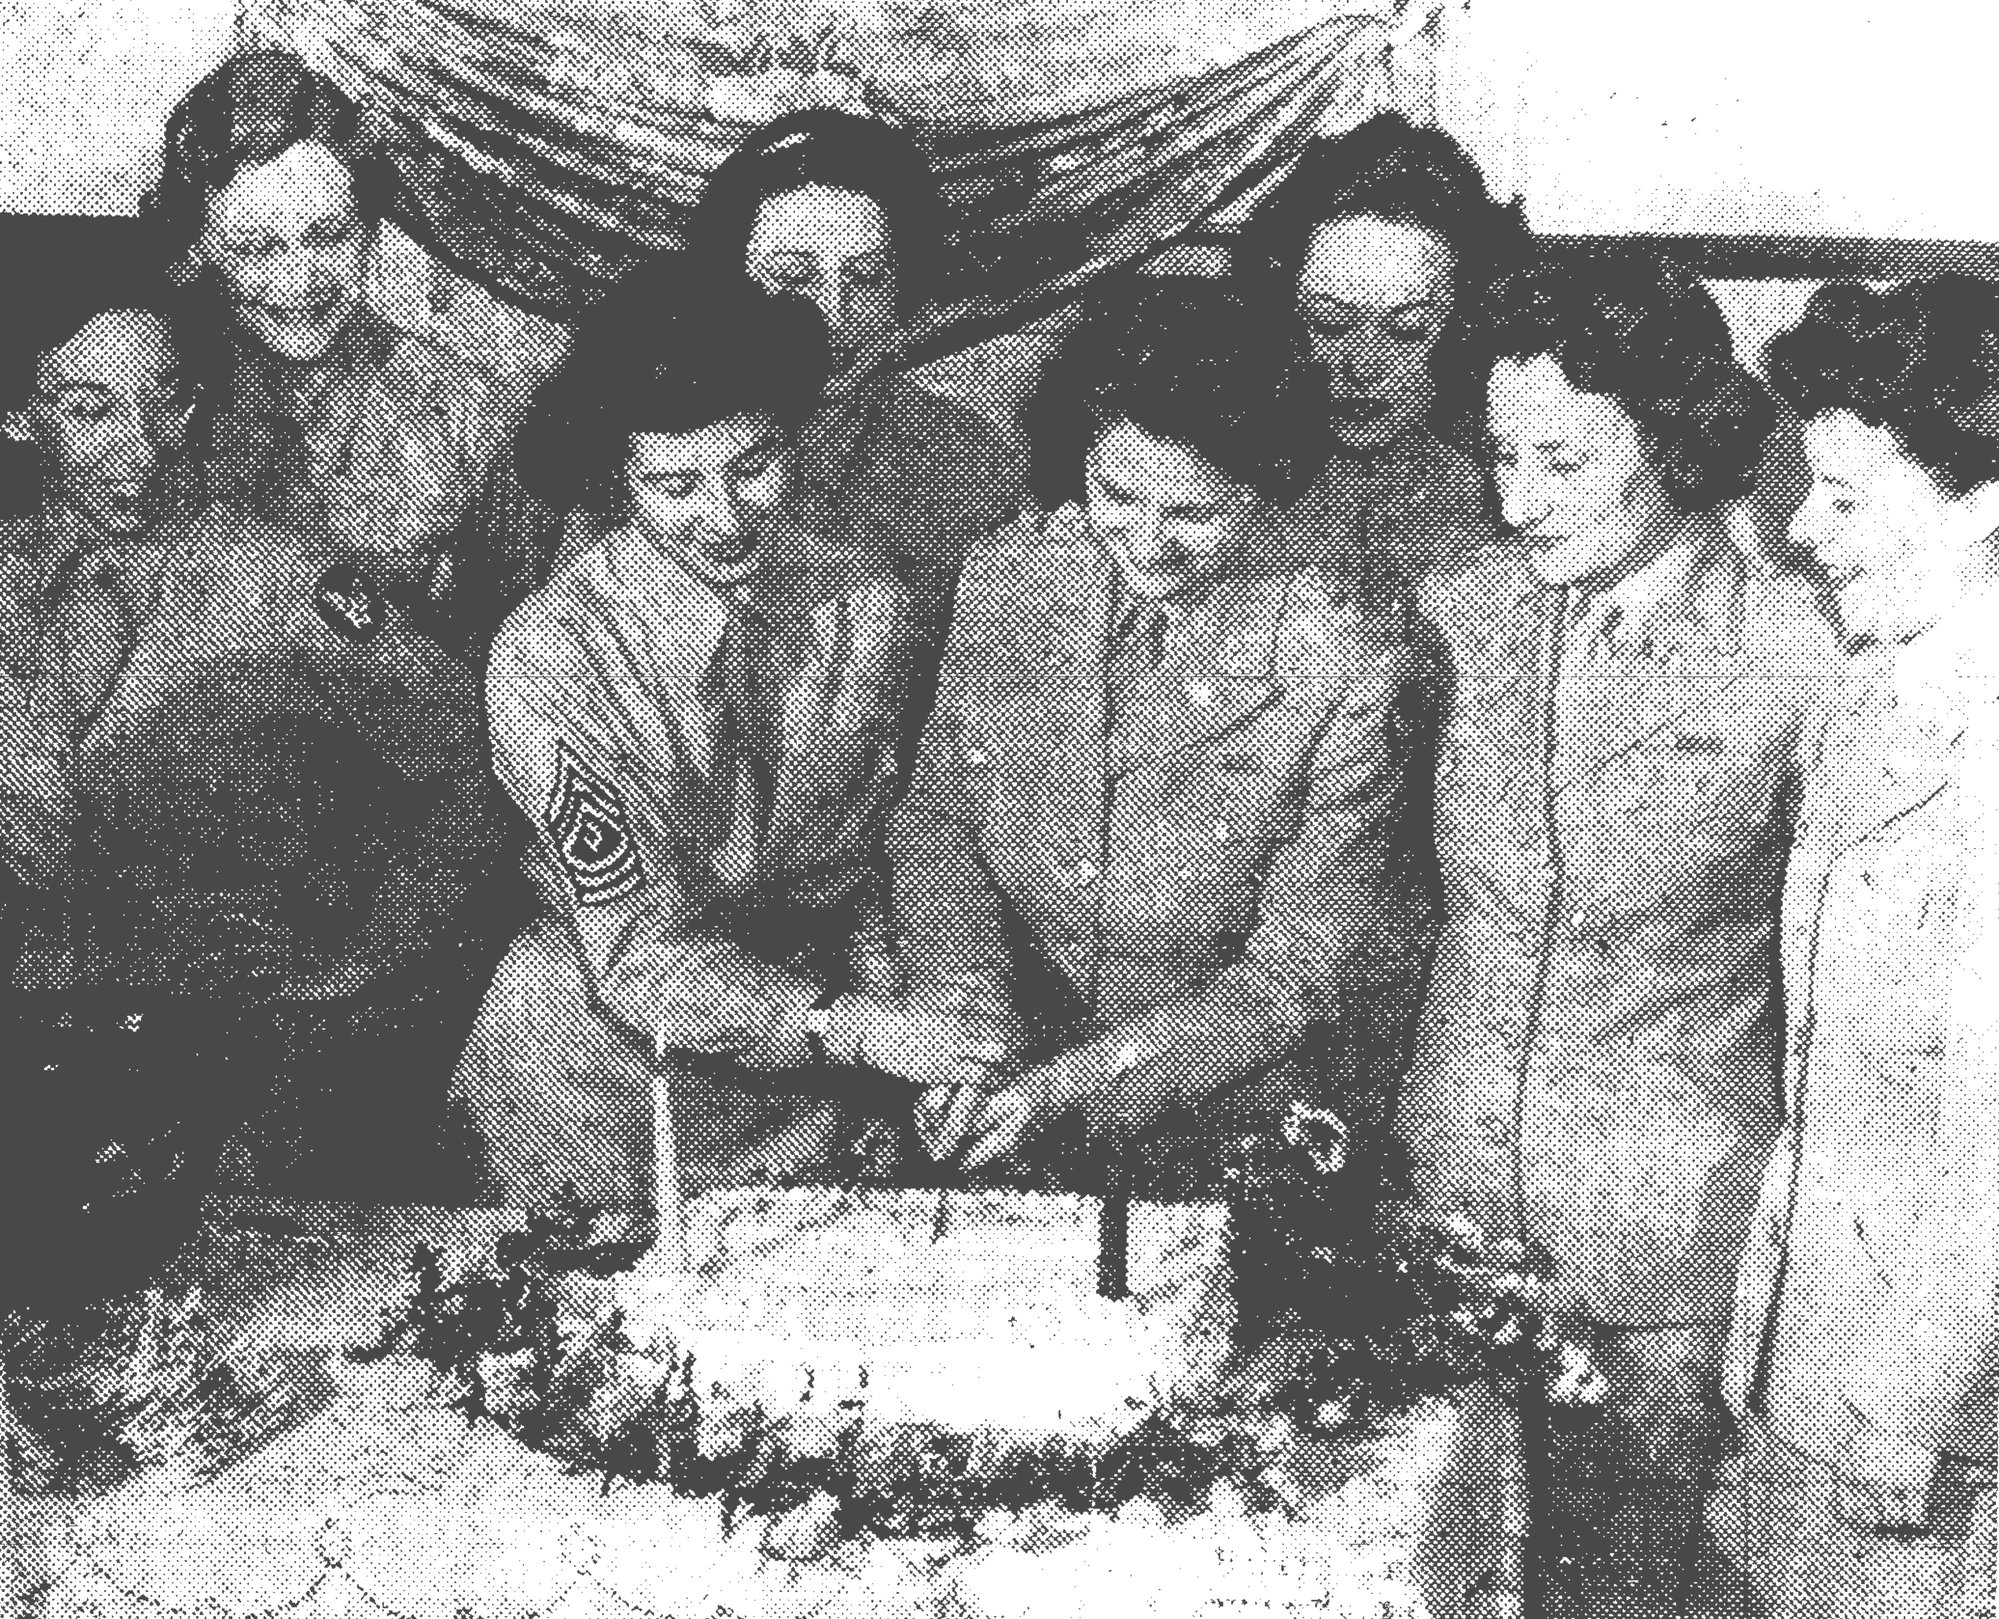 1944 - With two candles representing two years of service, Shaw Field WACs cut their birthday cake at the party held at the NCO Club. Front row from left are Pvt. Zimmerman, First Sgt. Doris Nevue, Lt. Virginia M. Kingsbury, WAC C.O. Lt. Helen Smith and Lt. Mary Edwards. Back row: Pvt. Florence Hahn, Pvt. Weinsberger and Pvt. Krause.